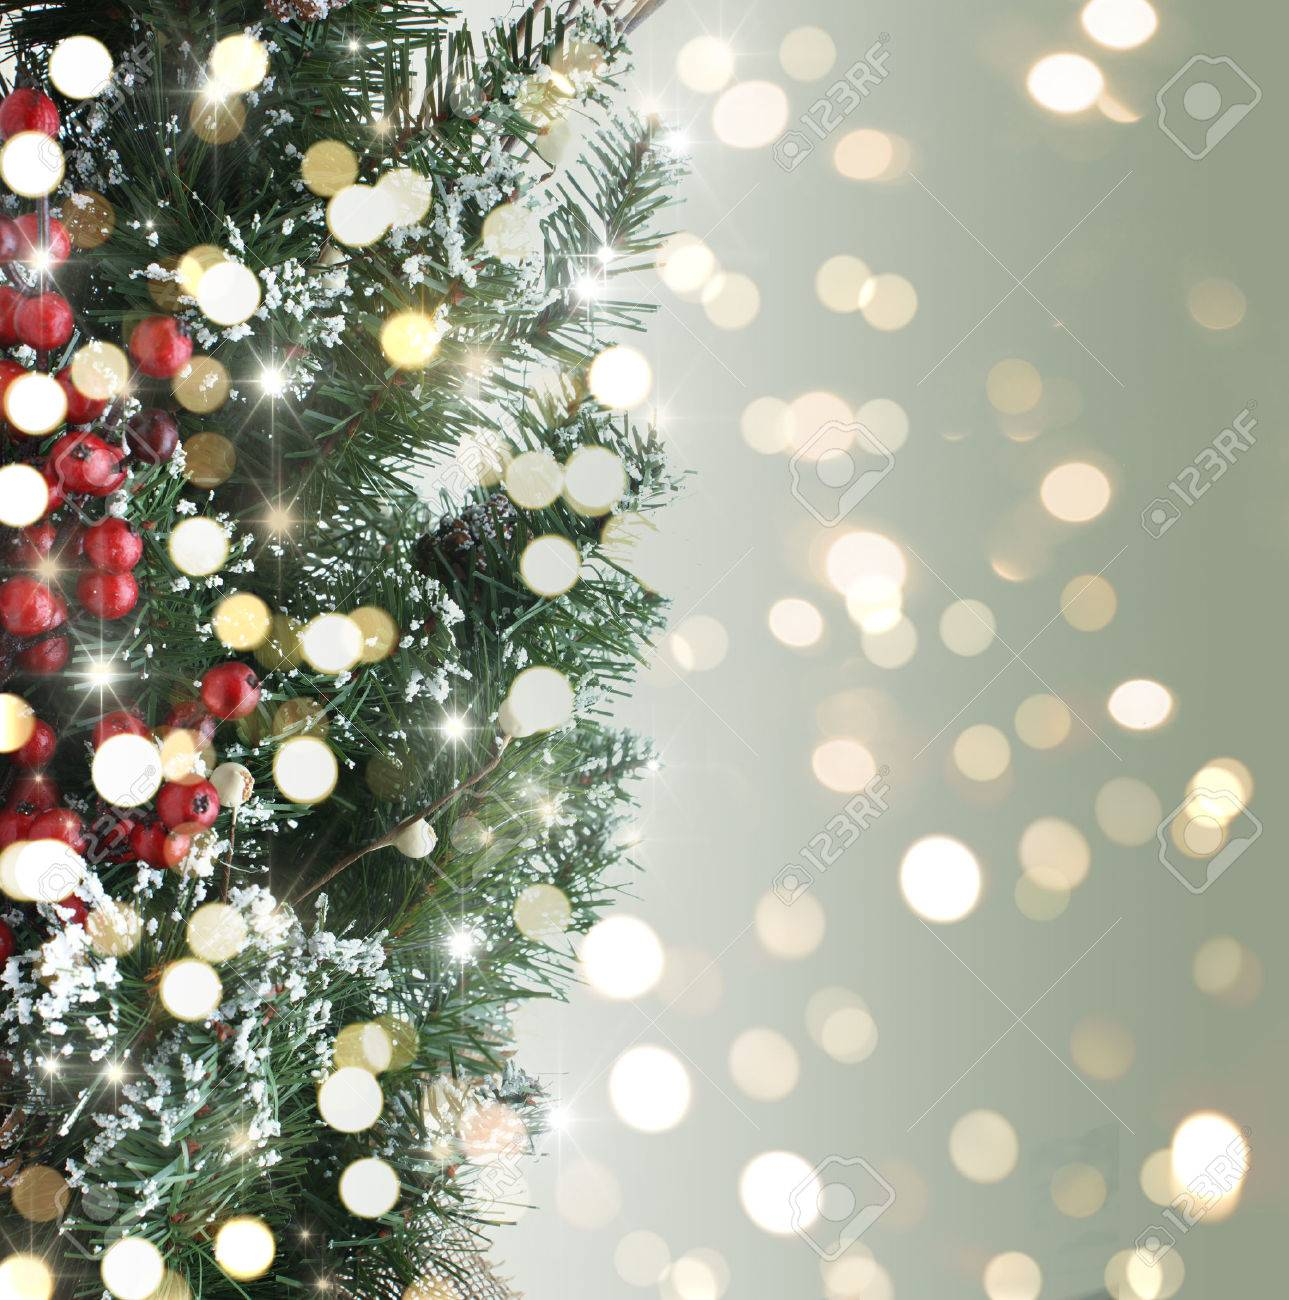 Christmas Tree Backgrounds.Christmas Tree Background With Bokeh Lights